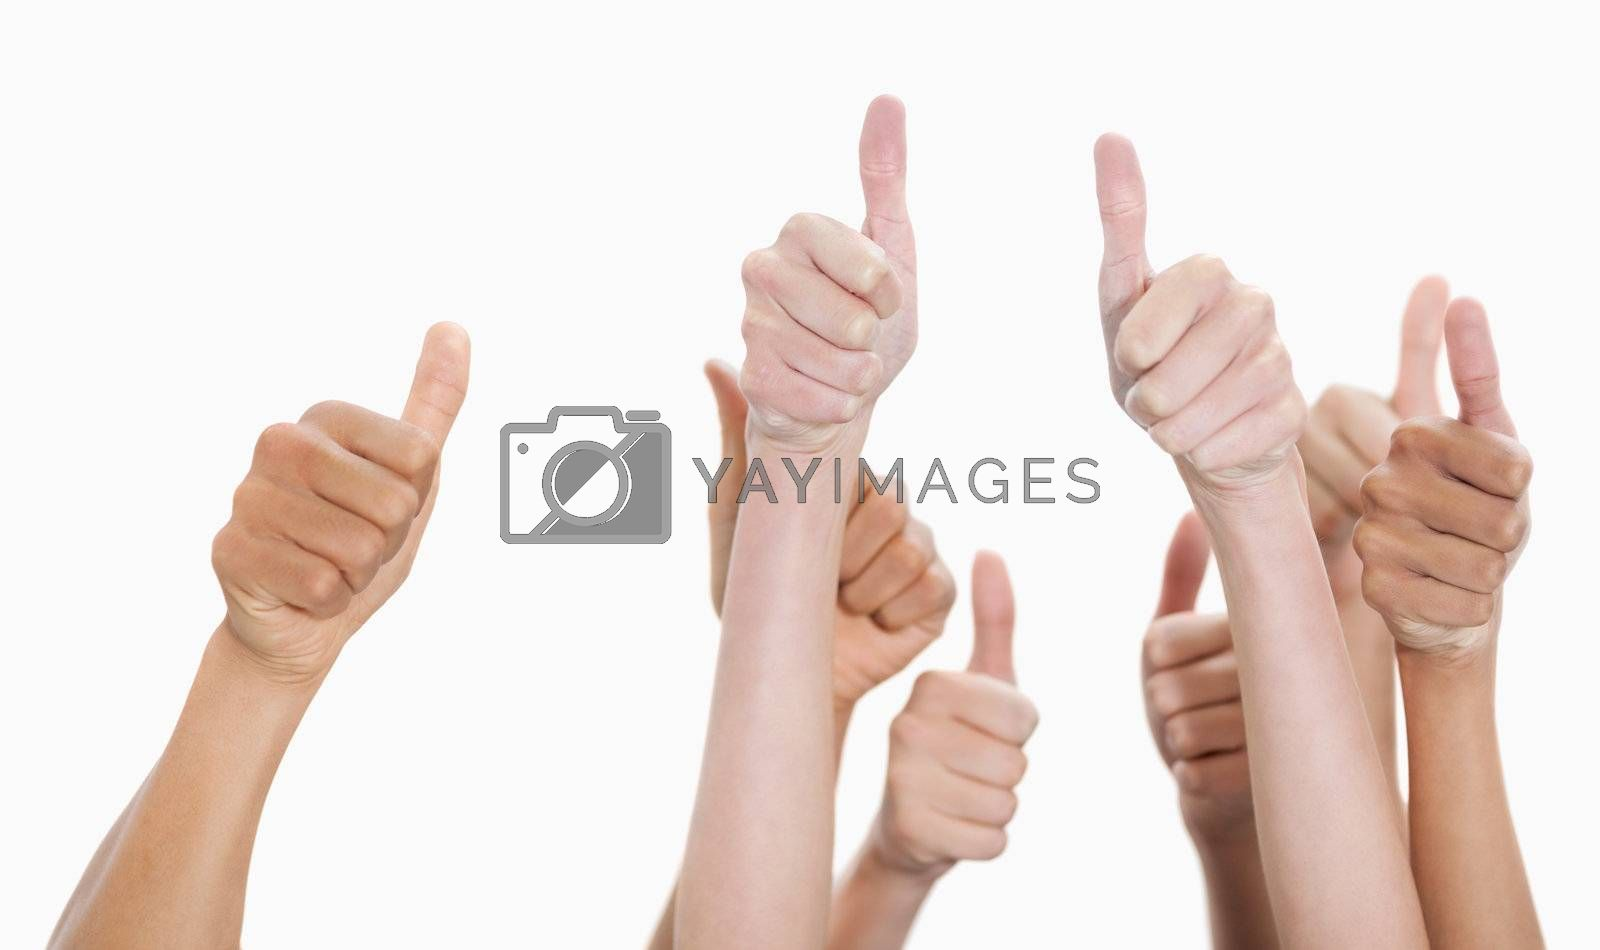 Hands up and thumbs raised against white background